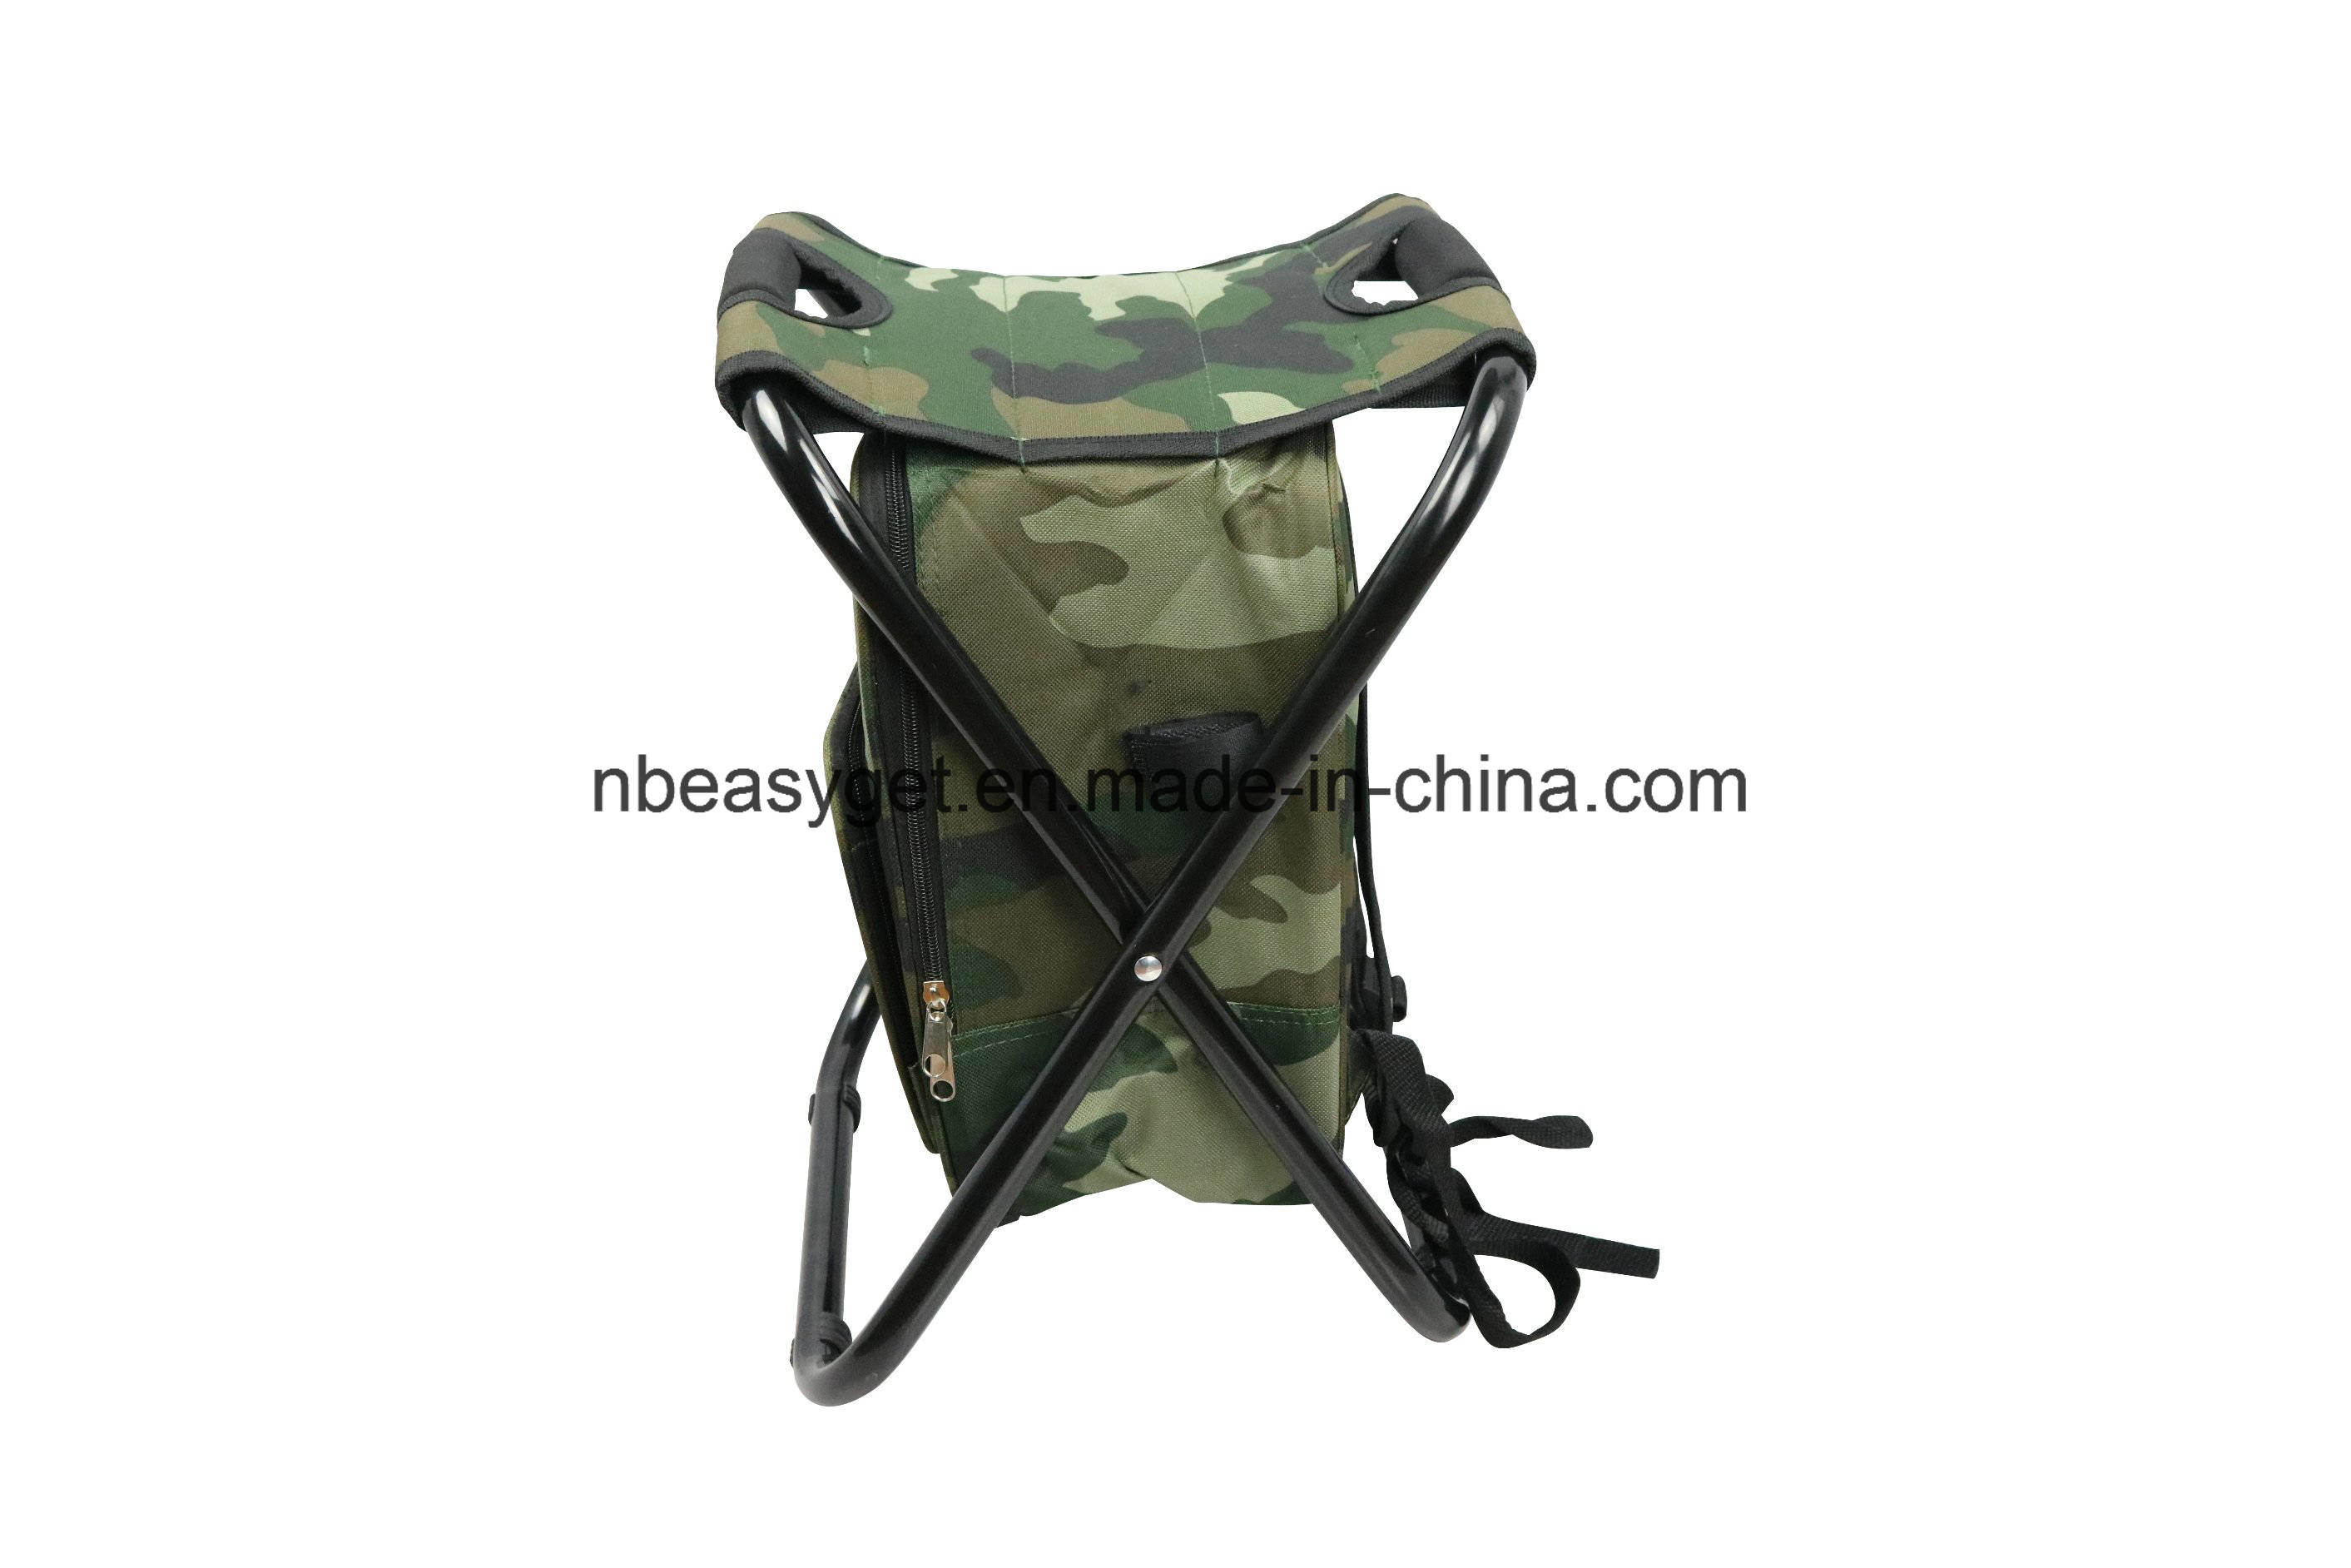 Folding Chair Backpack Hot Item Folding Chair Foldable Camouflage Backpack Cooler Bag 3 In 1 Portable Fishing Stool And Sports Chair